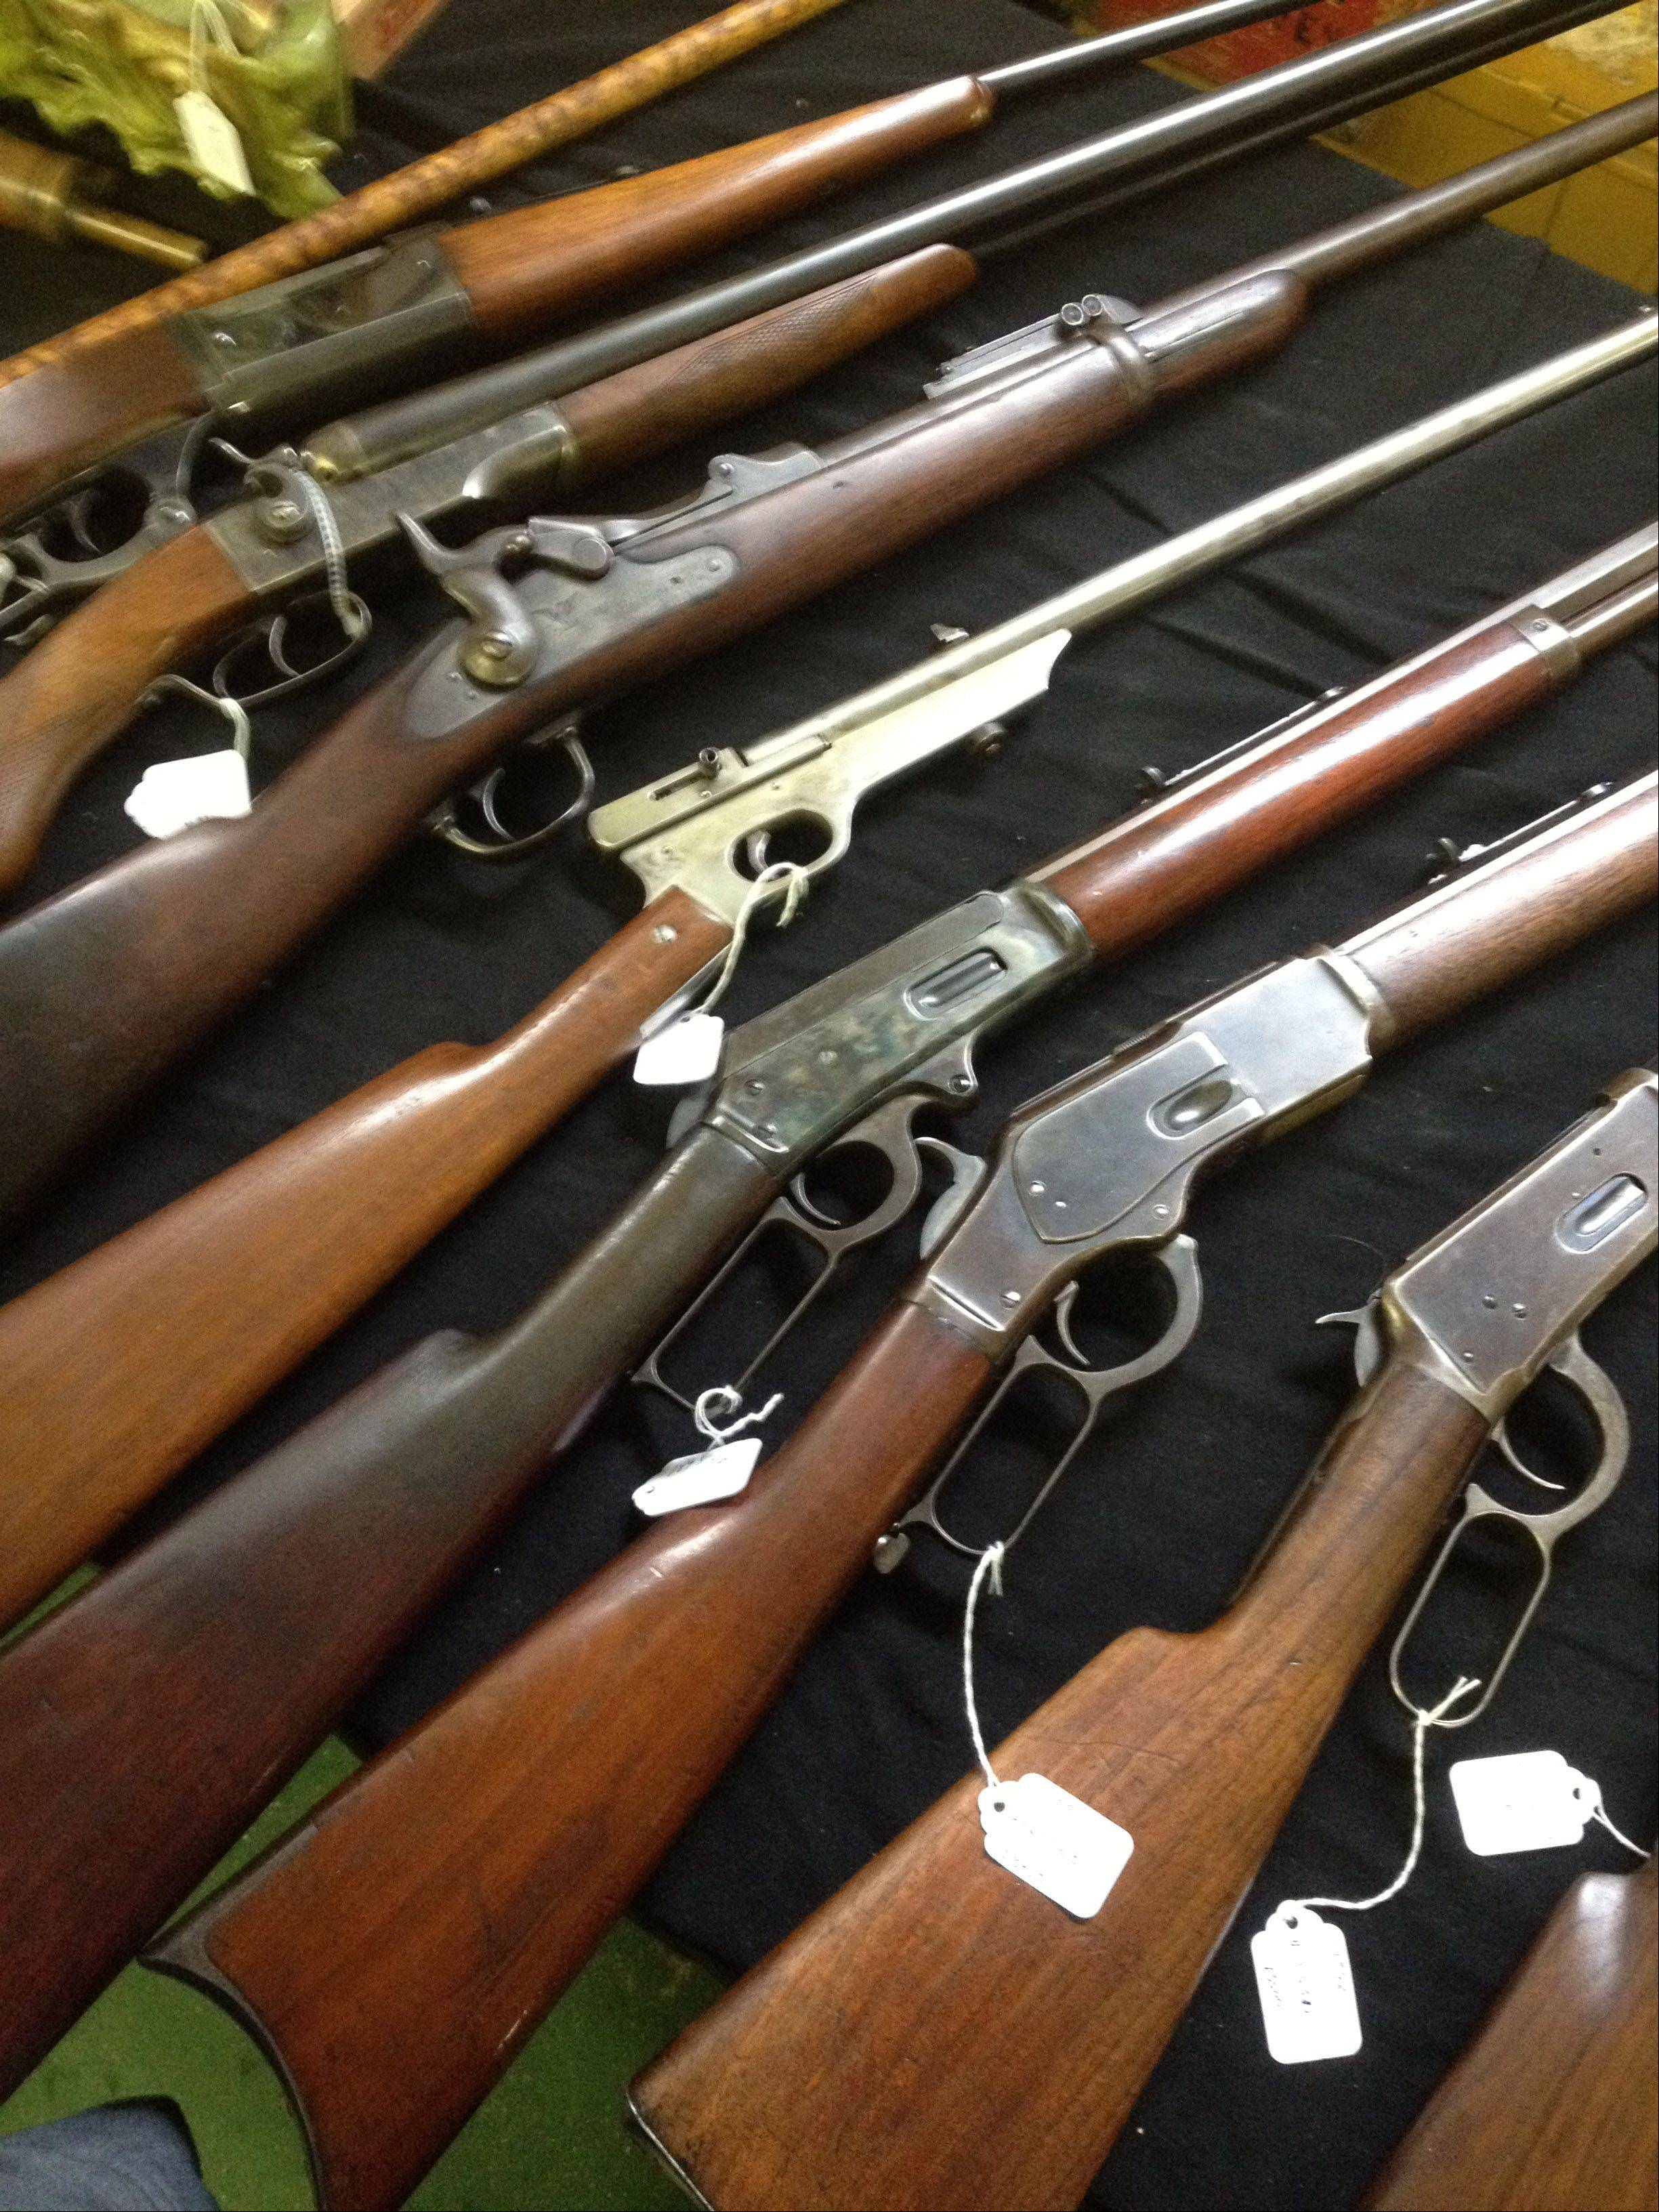 Ammunition and semiautomatic weapons went fast at the Kane County Sportsman's Show at the Kane County Fairgrounds Sunday, which also featured antique rifles, like those pictured here.